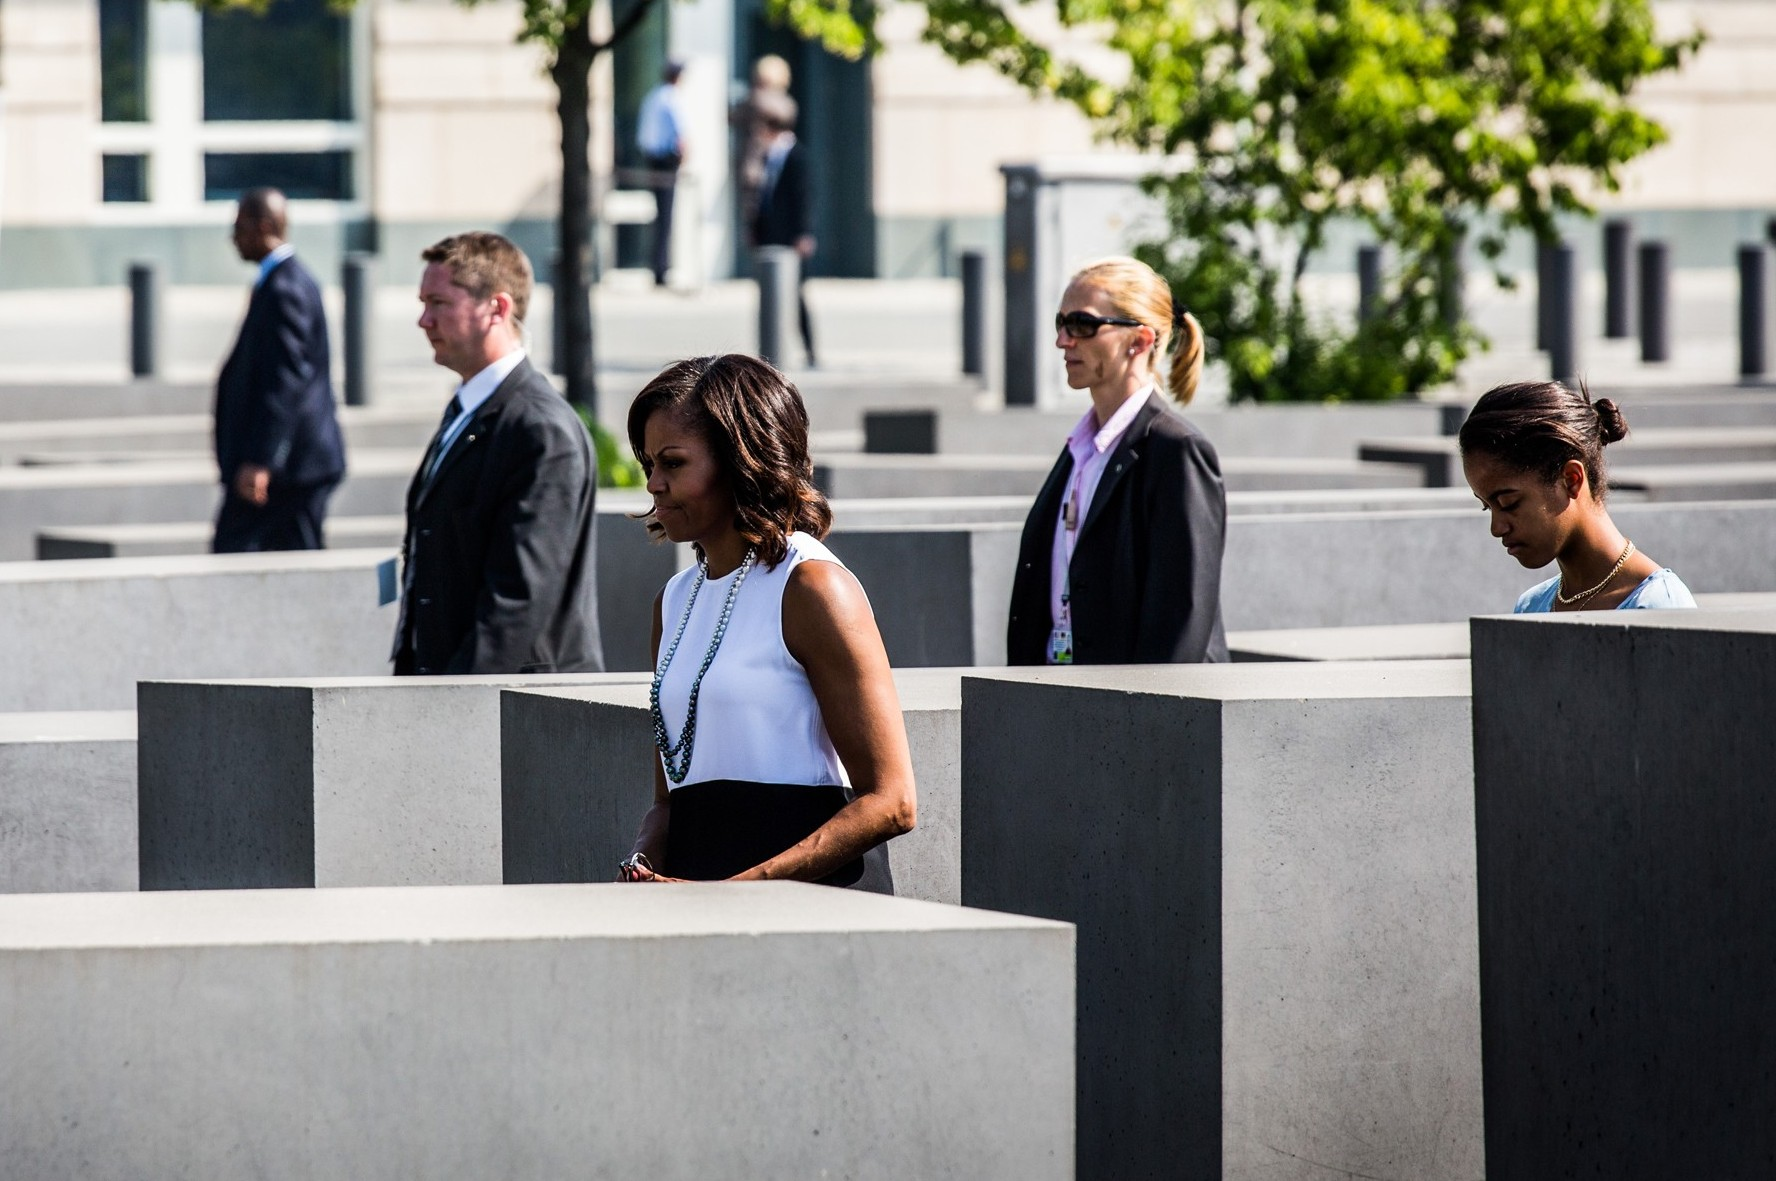 Michelle Obama Holocaust, Malia Obama Holocaust